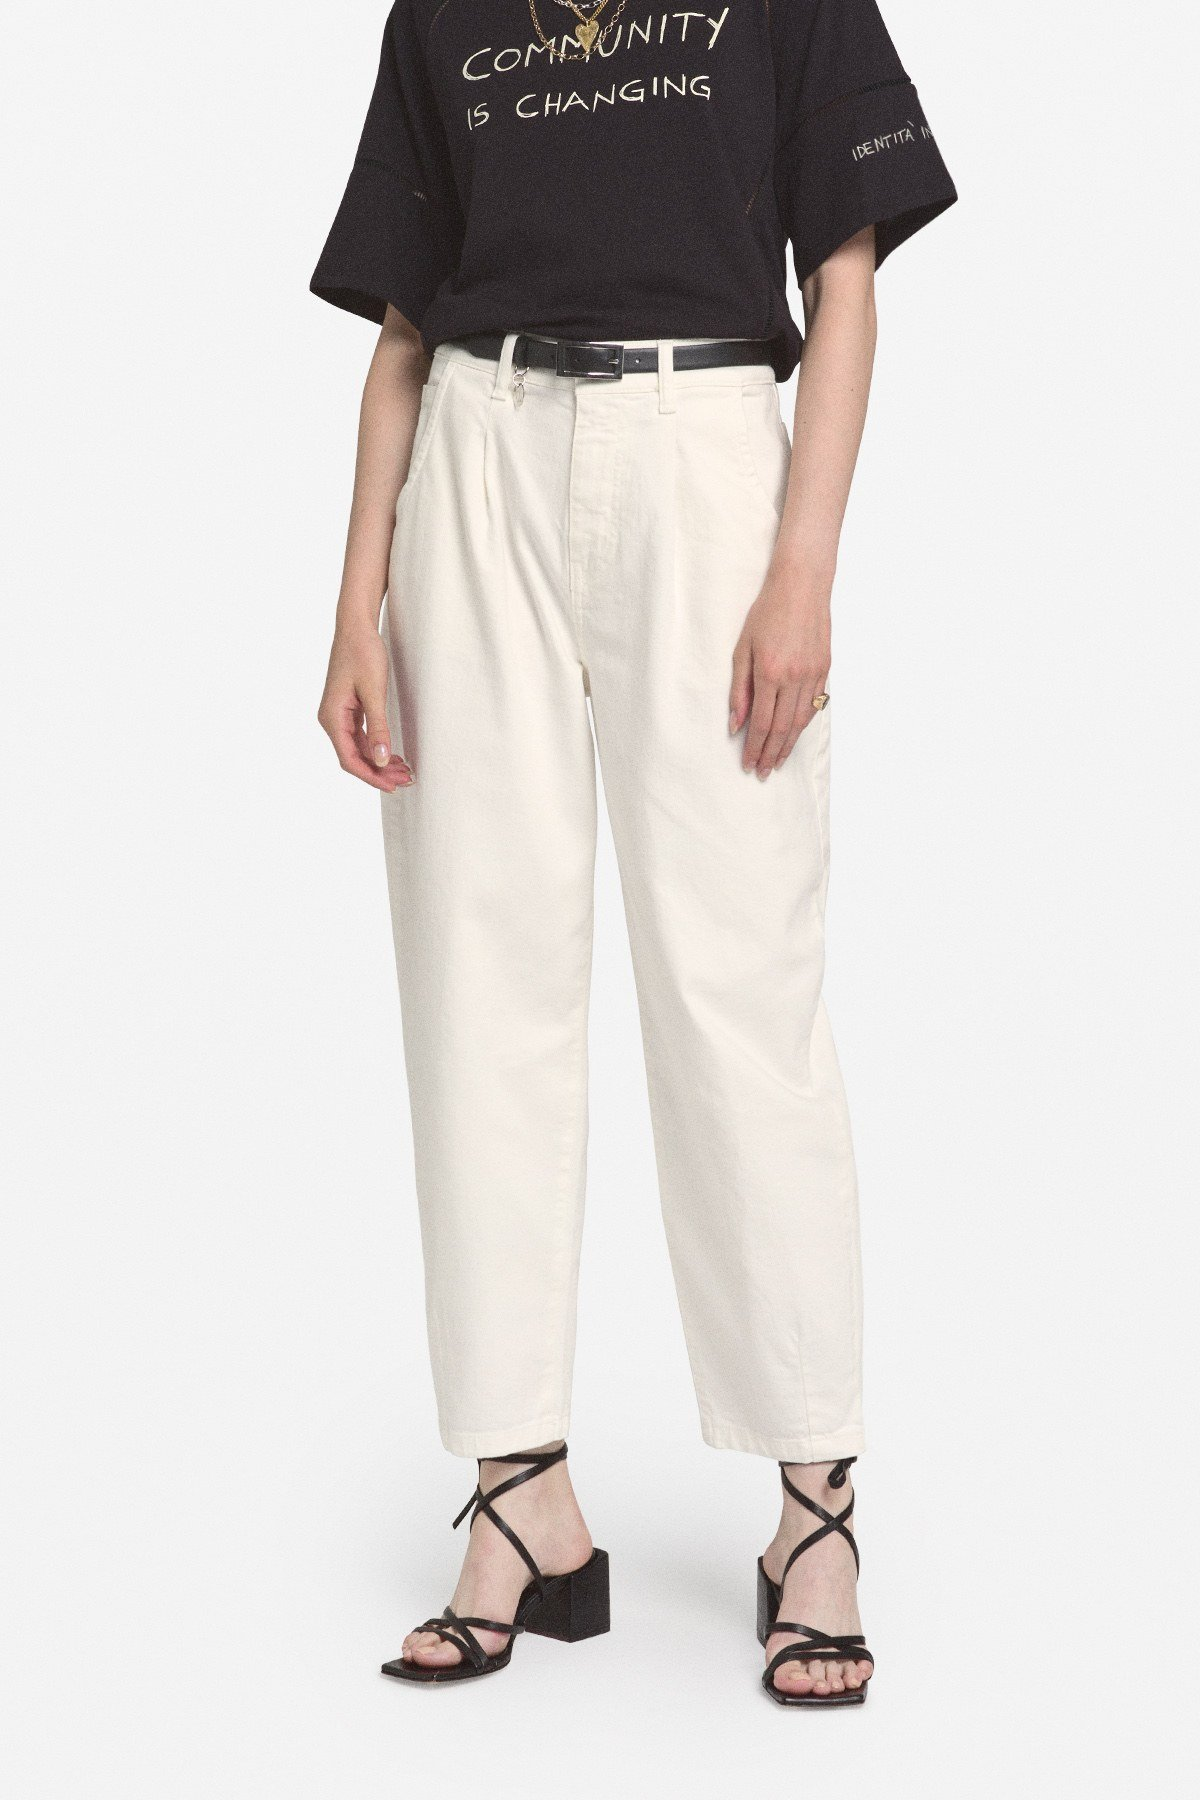 Cotton pinch roll jeans